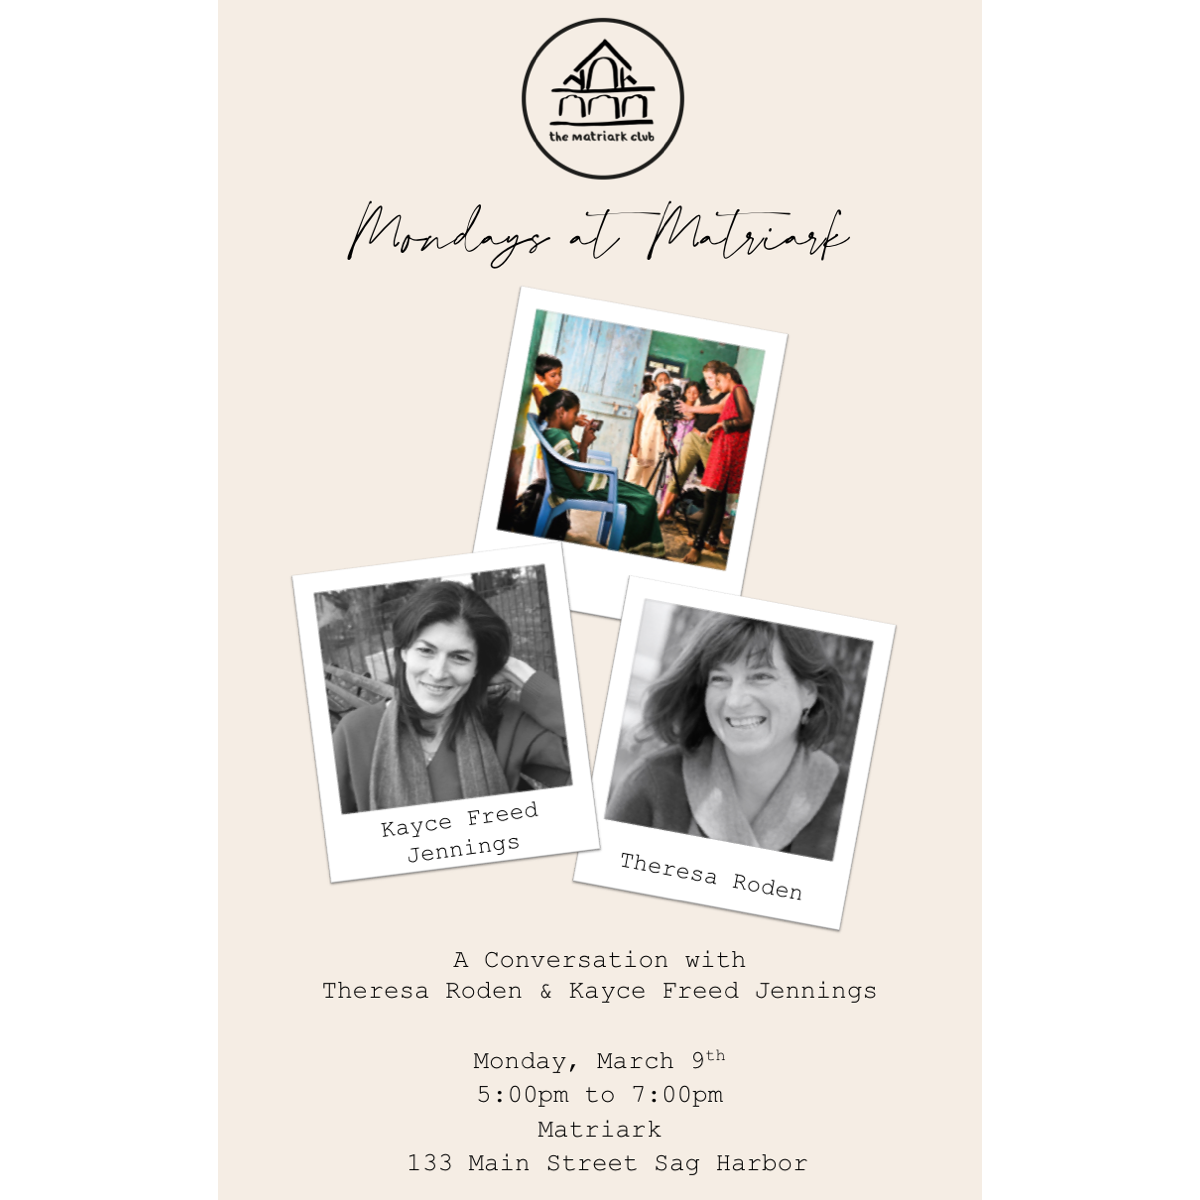 Conversation with Theresa Roden & Kayce Freed Jennings - March 9th